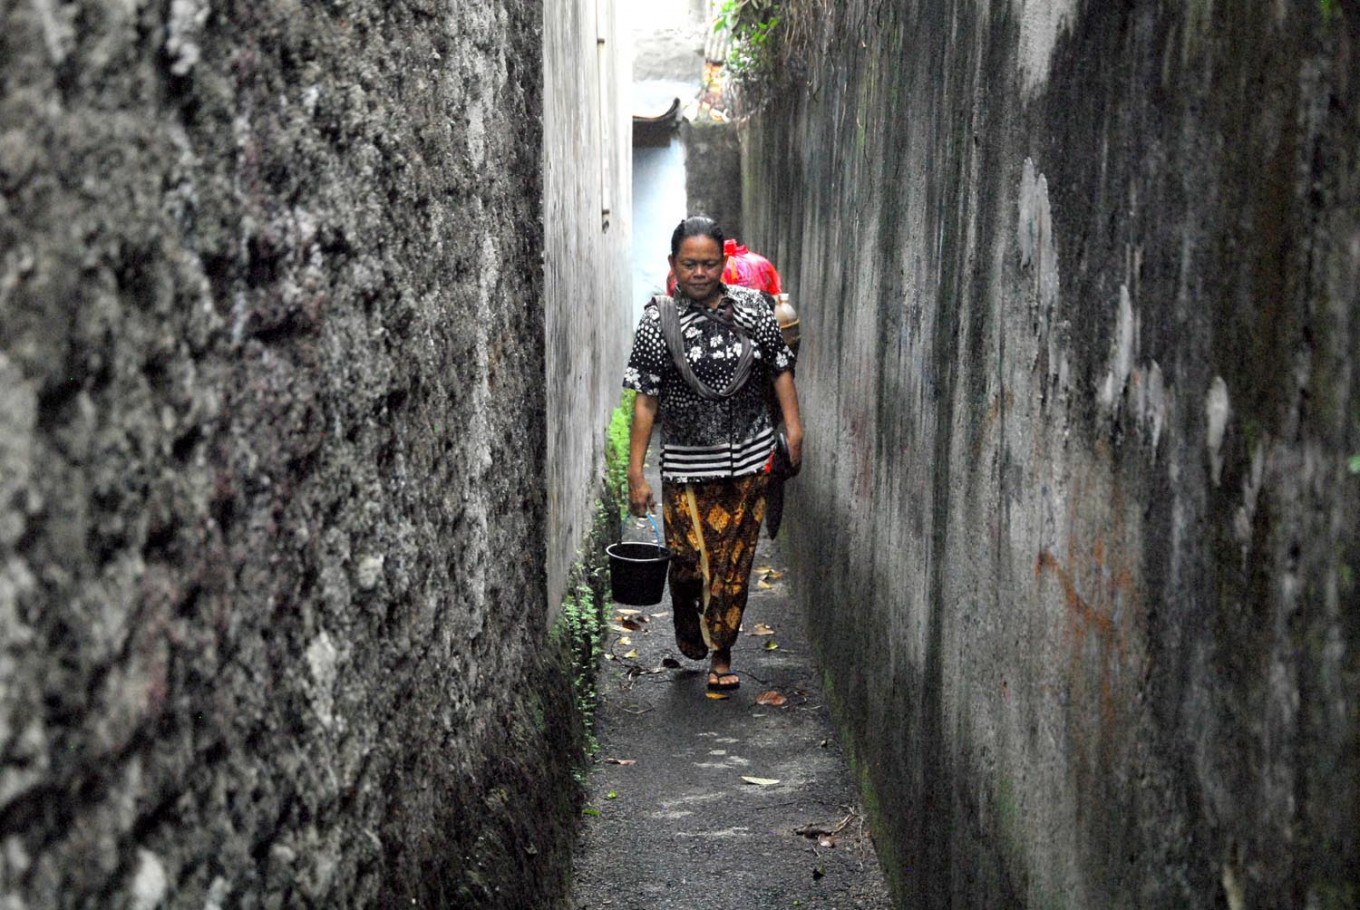 Handayani walks in a narrow alley in Pesanggrahan, South Jakarta. JP/Rahmat Dian Prasanto